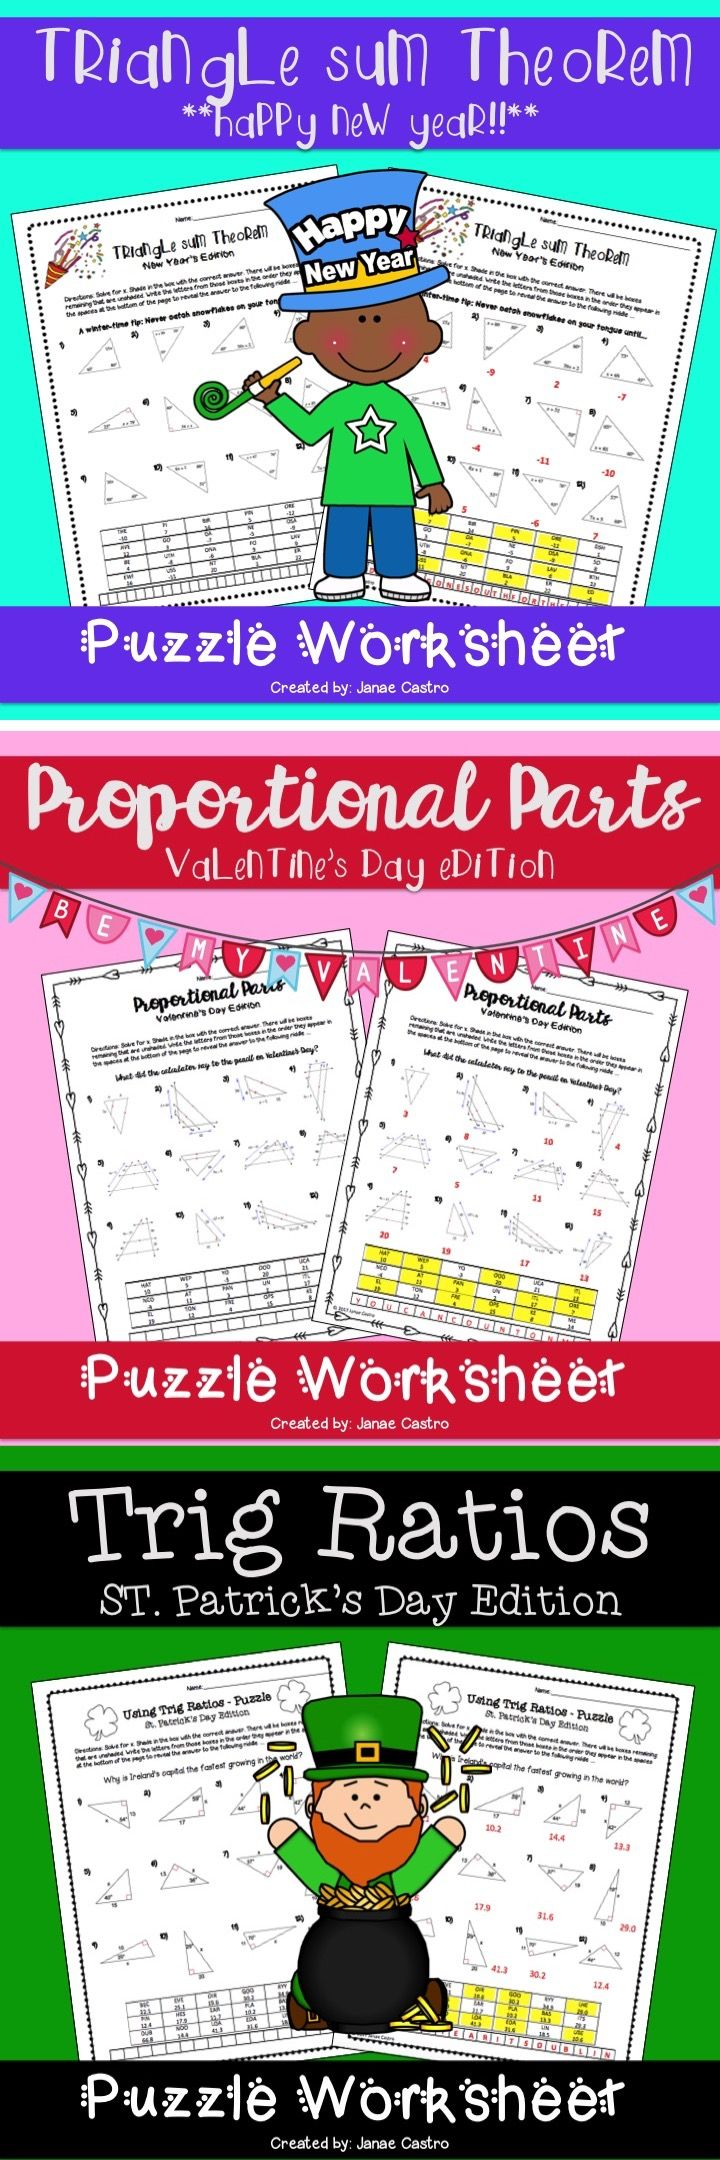 Geometry Holiday Puzzles. Geometry Christmas, Geometry Valentine's Day. Geometry New Year, Geometry St. Patricks, Geometry Thanksgiving